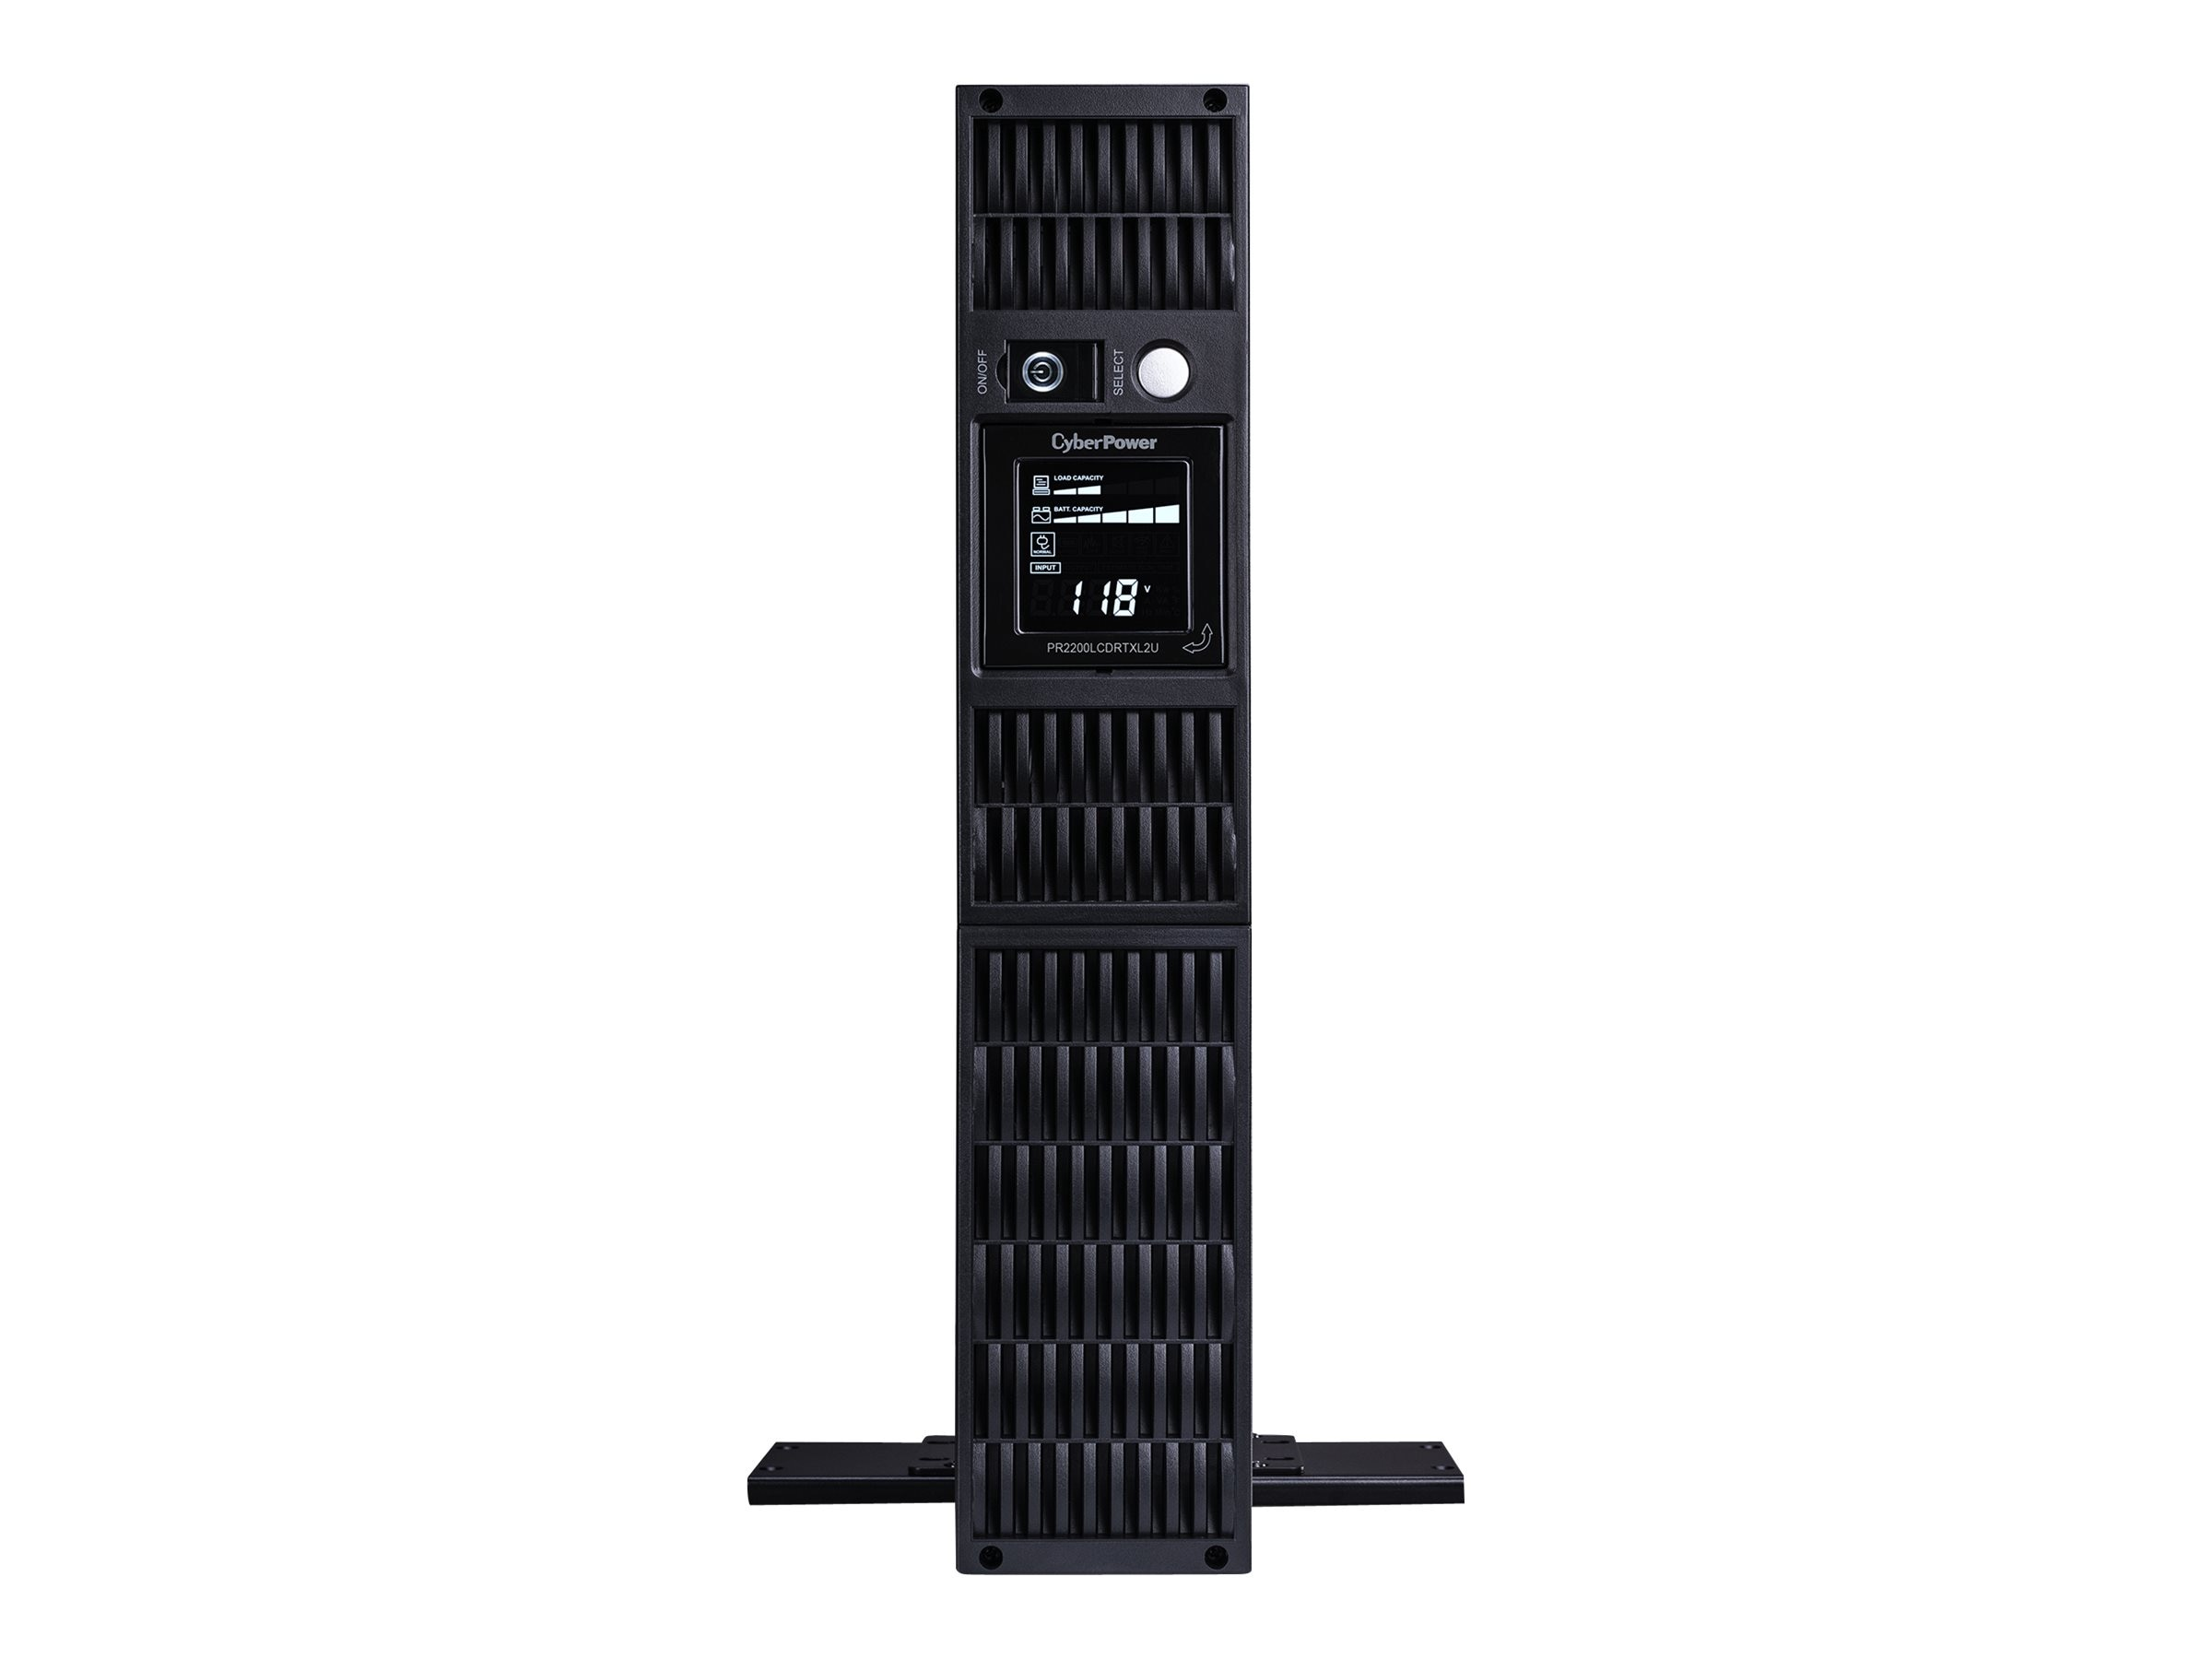 CyberPower Smart App Sinewave LCD UPS 2U RM Tower 120V AVR, (8) Outlets TAA Compliant